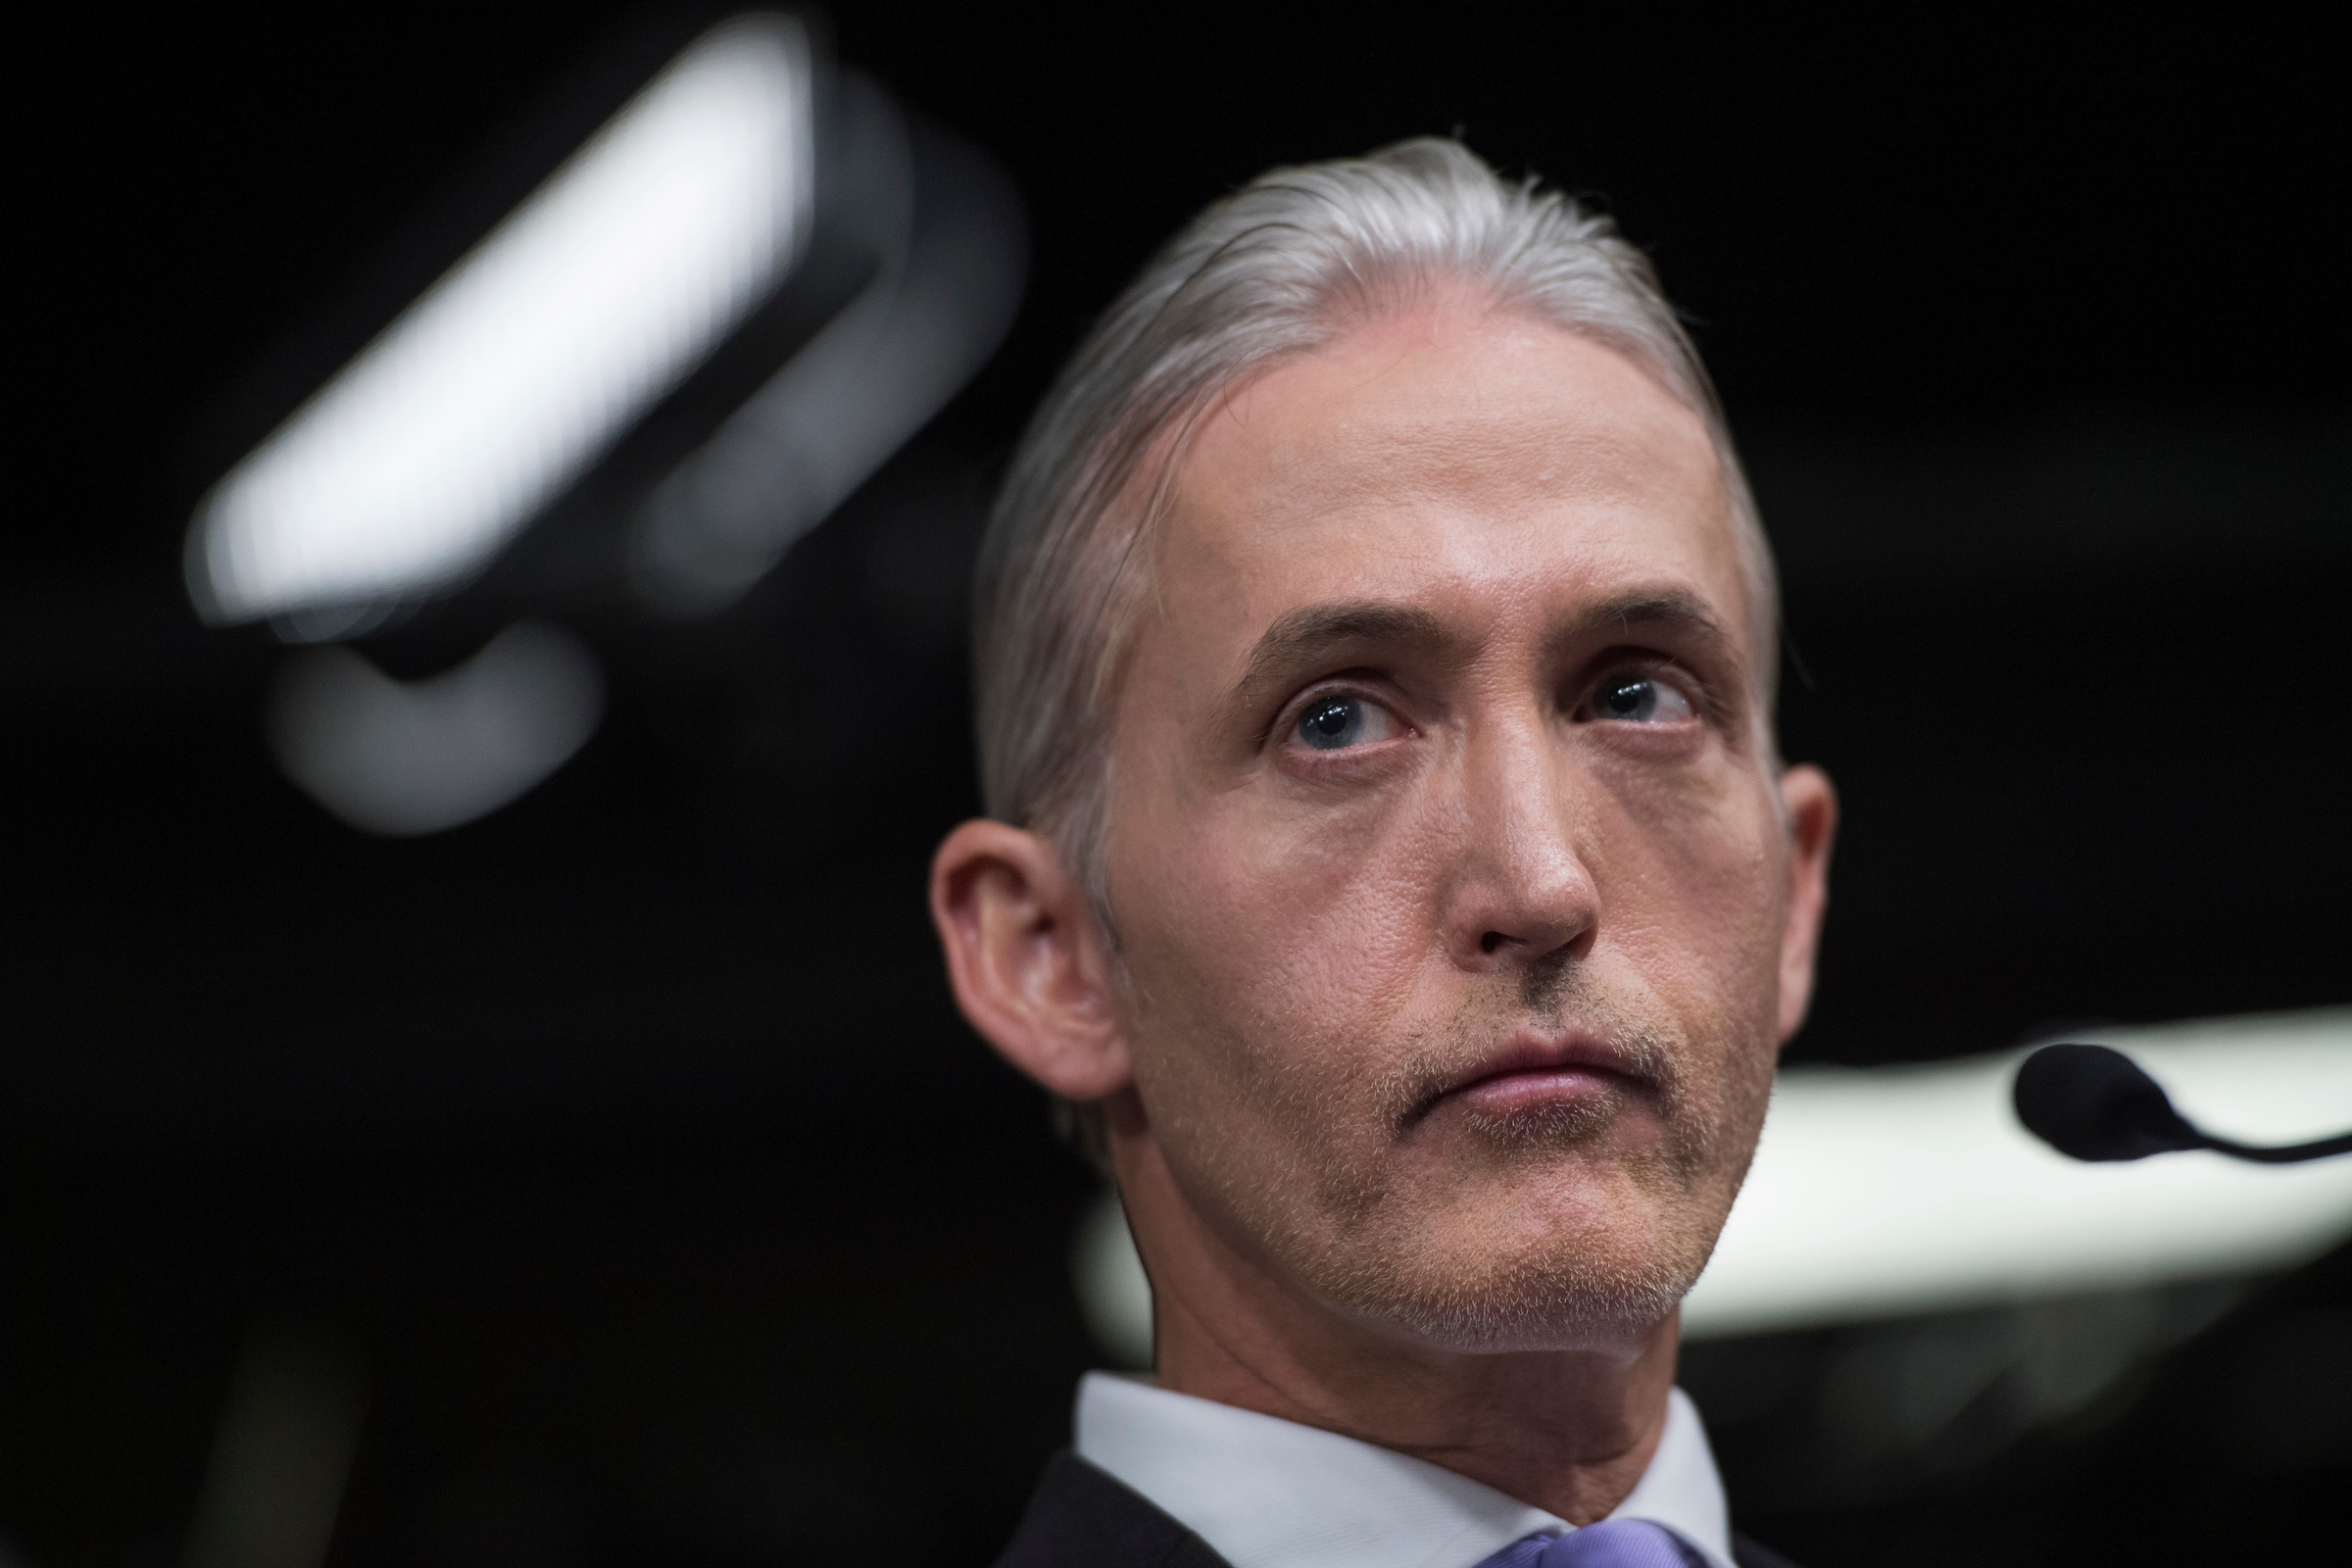 South Carolina Rep. Trey Gowdy, chairman of the Select Committee on Benghazi, conducts a news conference in June. (Tom Williams/CQ Roll Call File Photo)